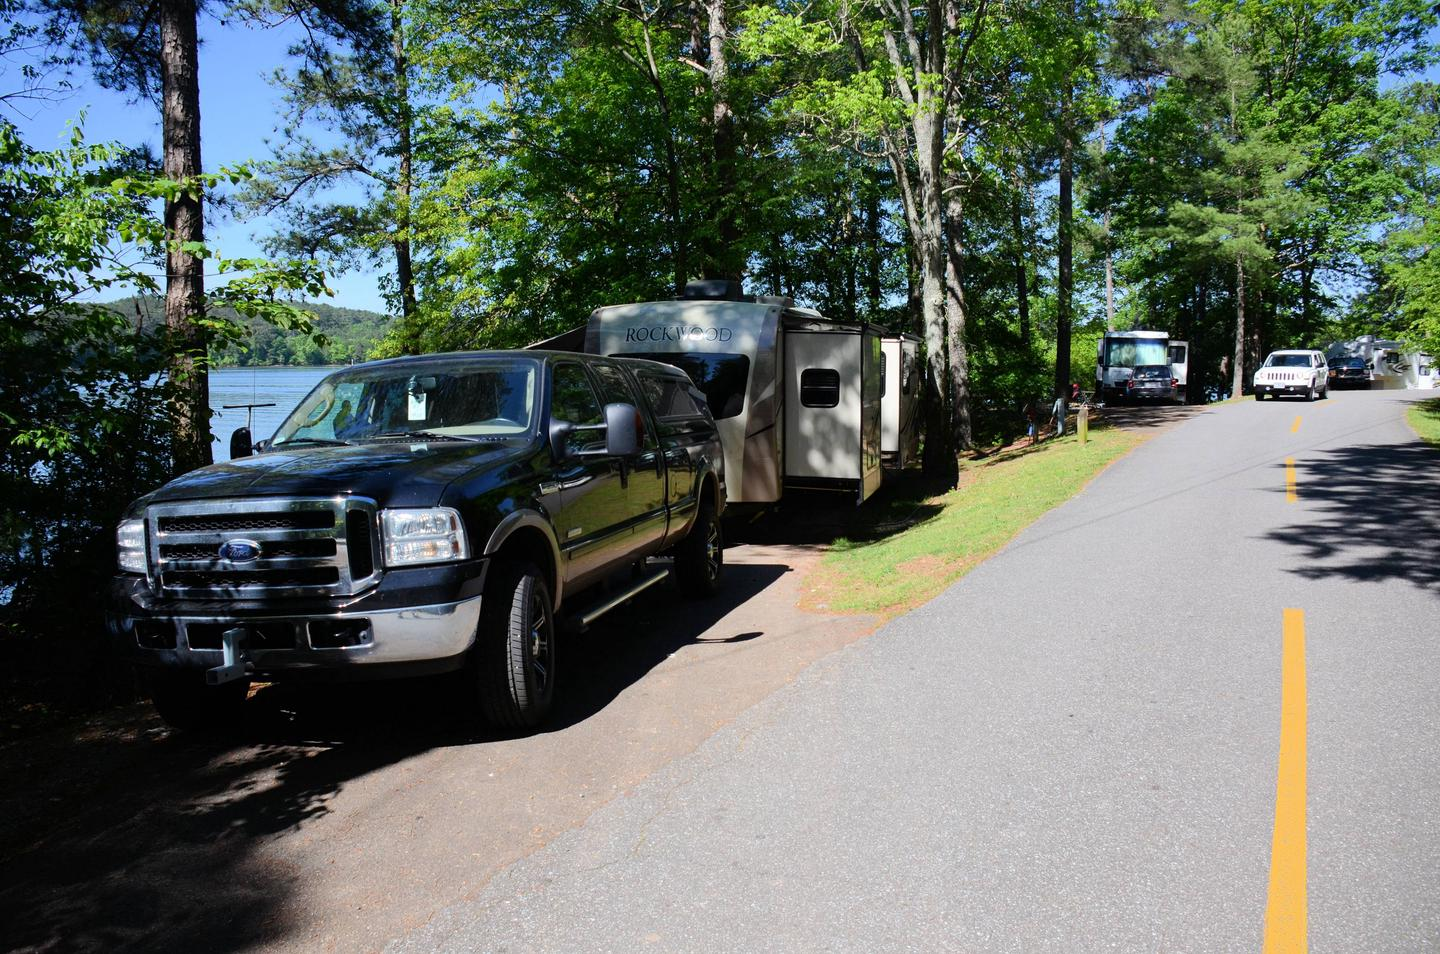 Driveway angle/slope, utilities-side clearance.McKinney Campground, campsite 47.